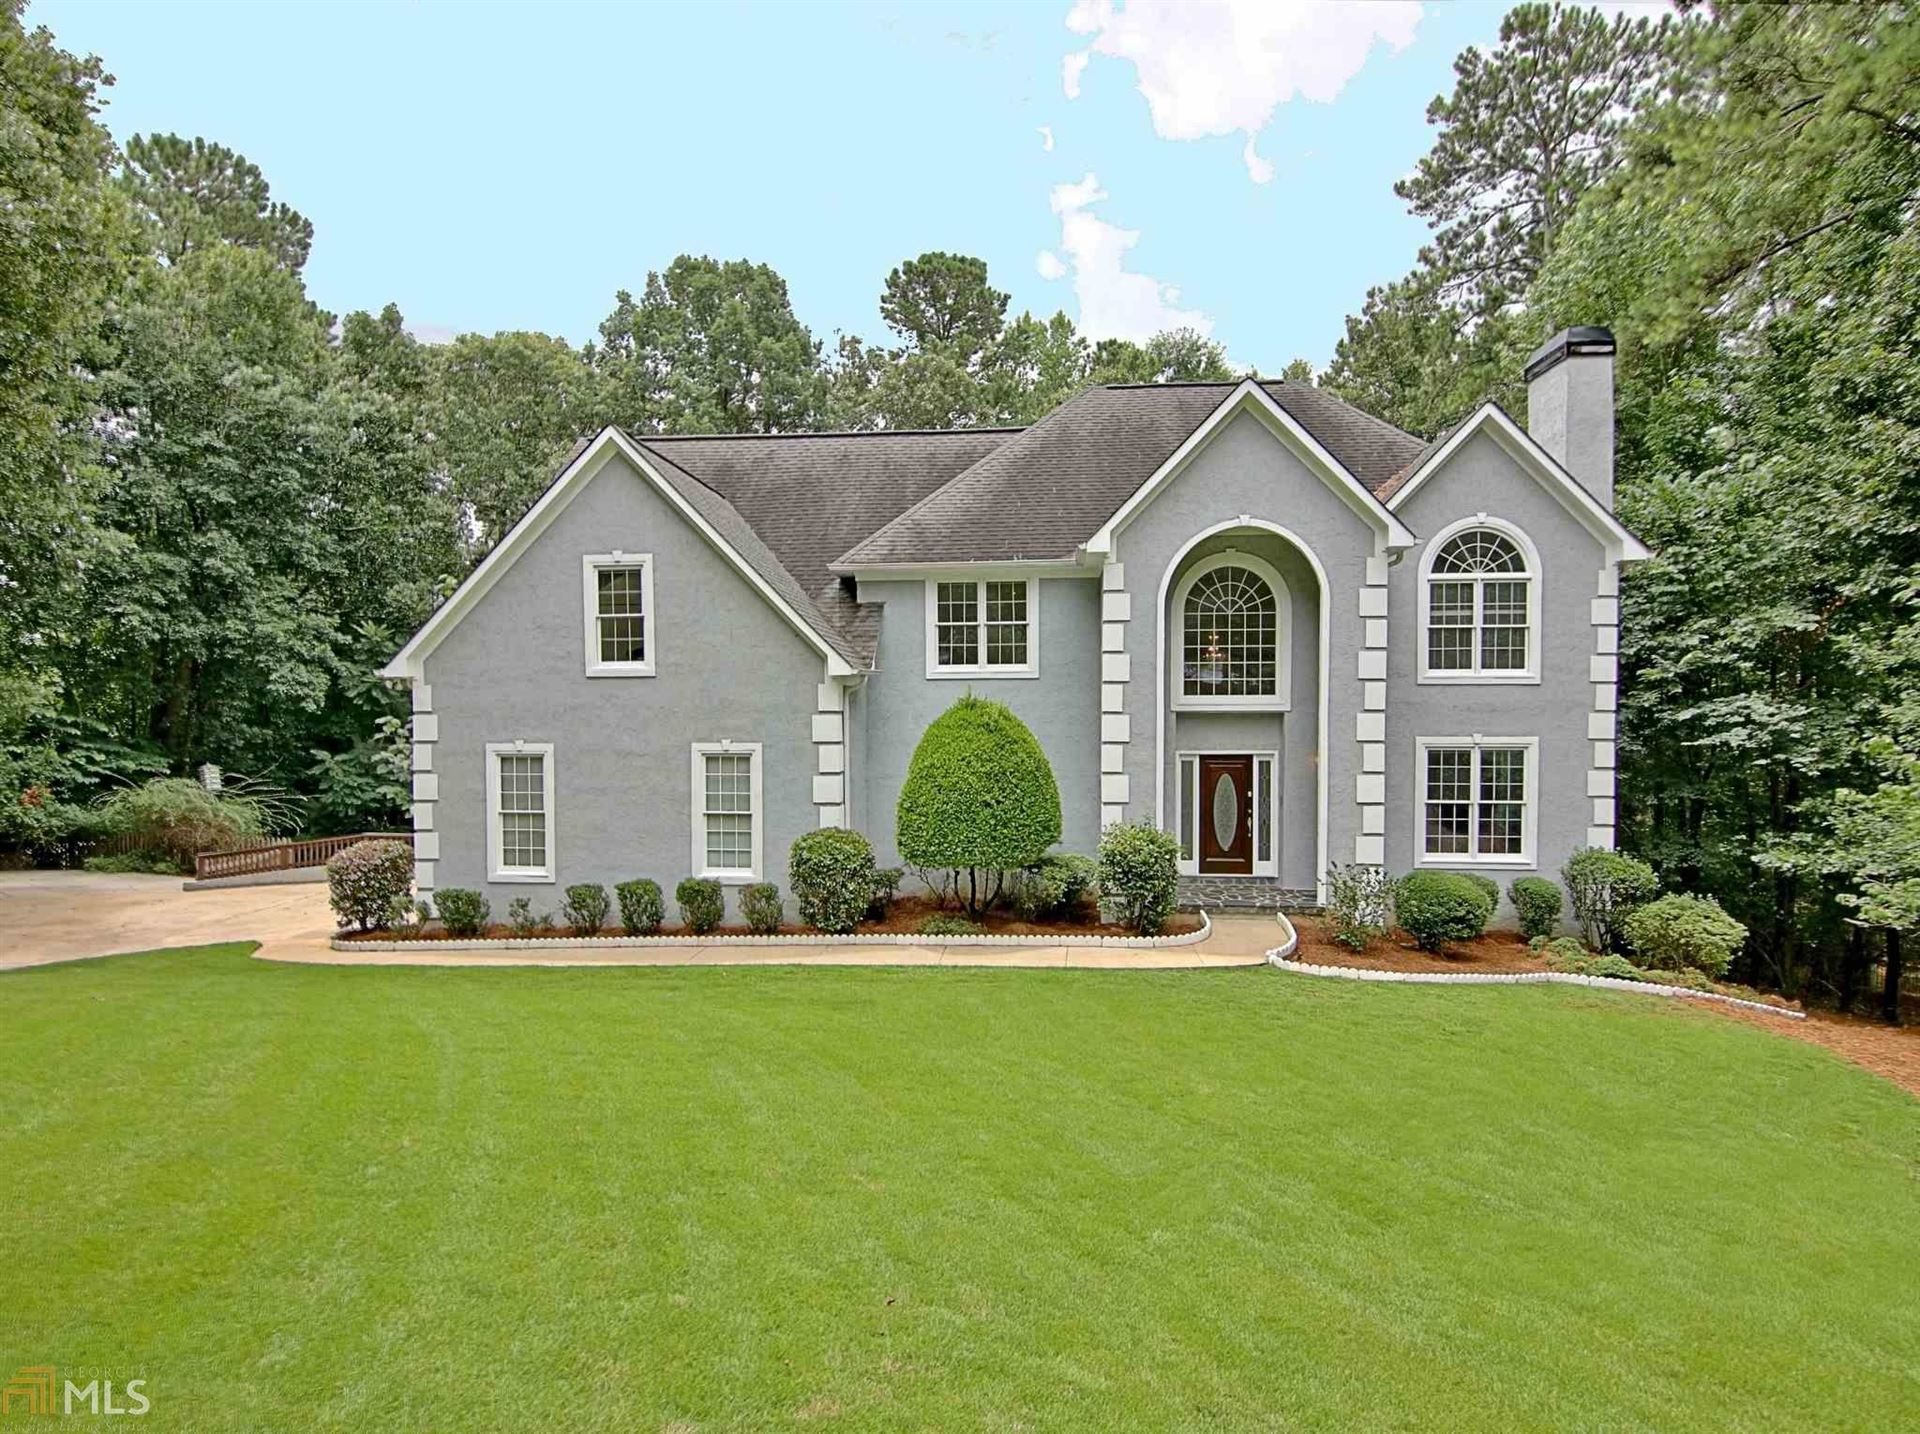 705 Thornhill, Peachtree City, GA 30269 - #: 8815986